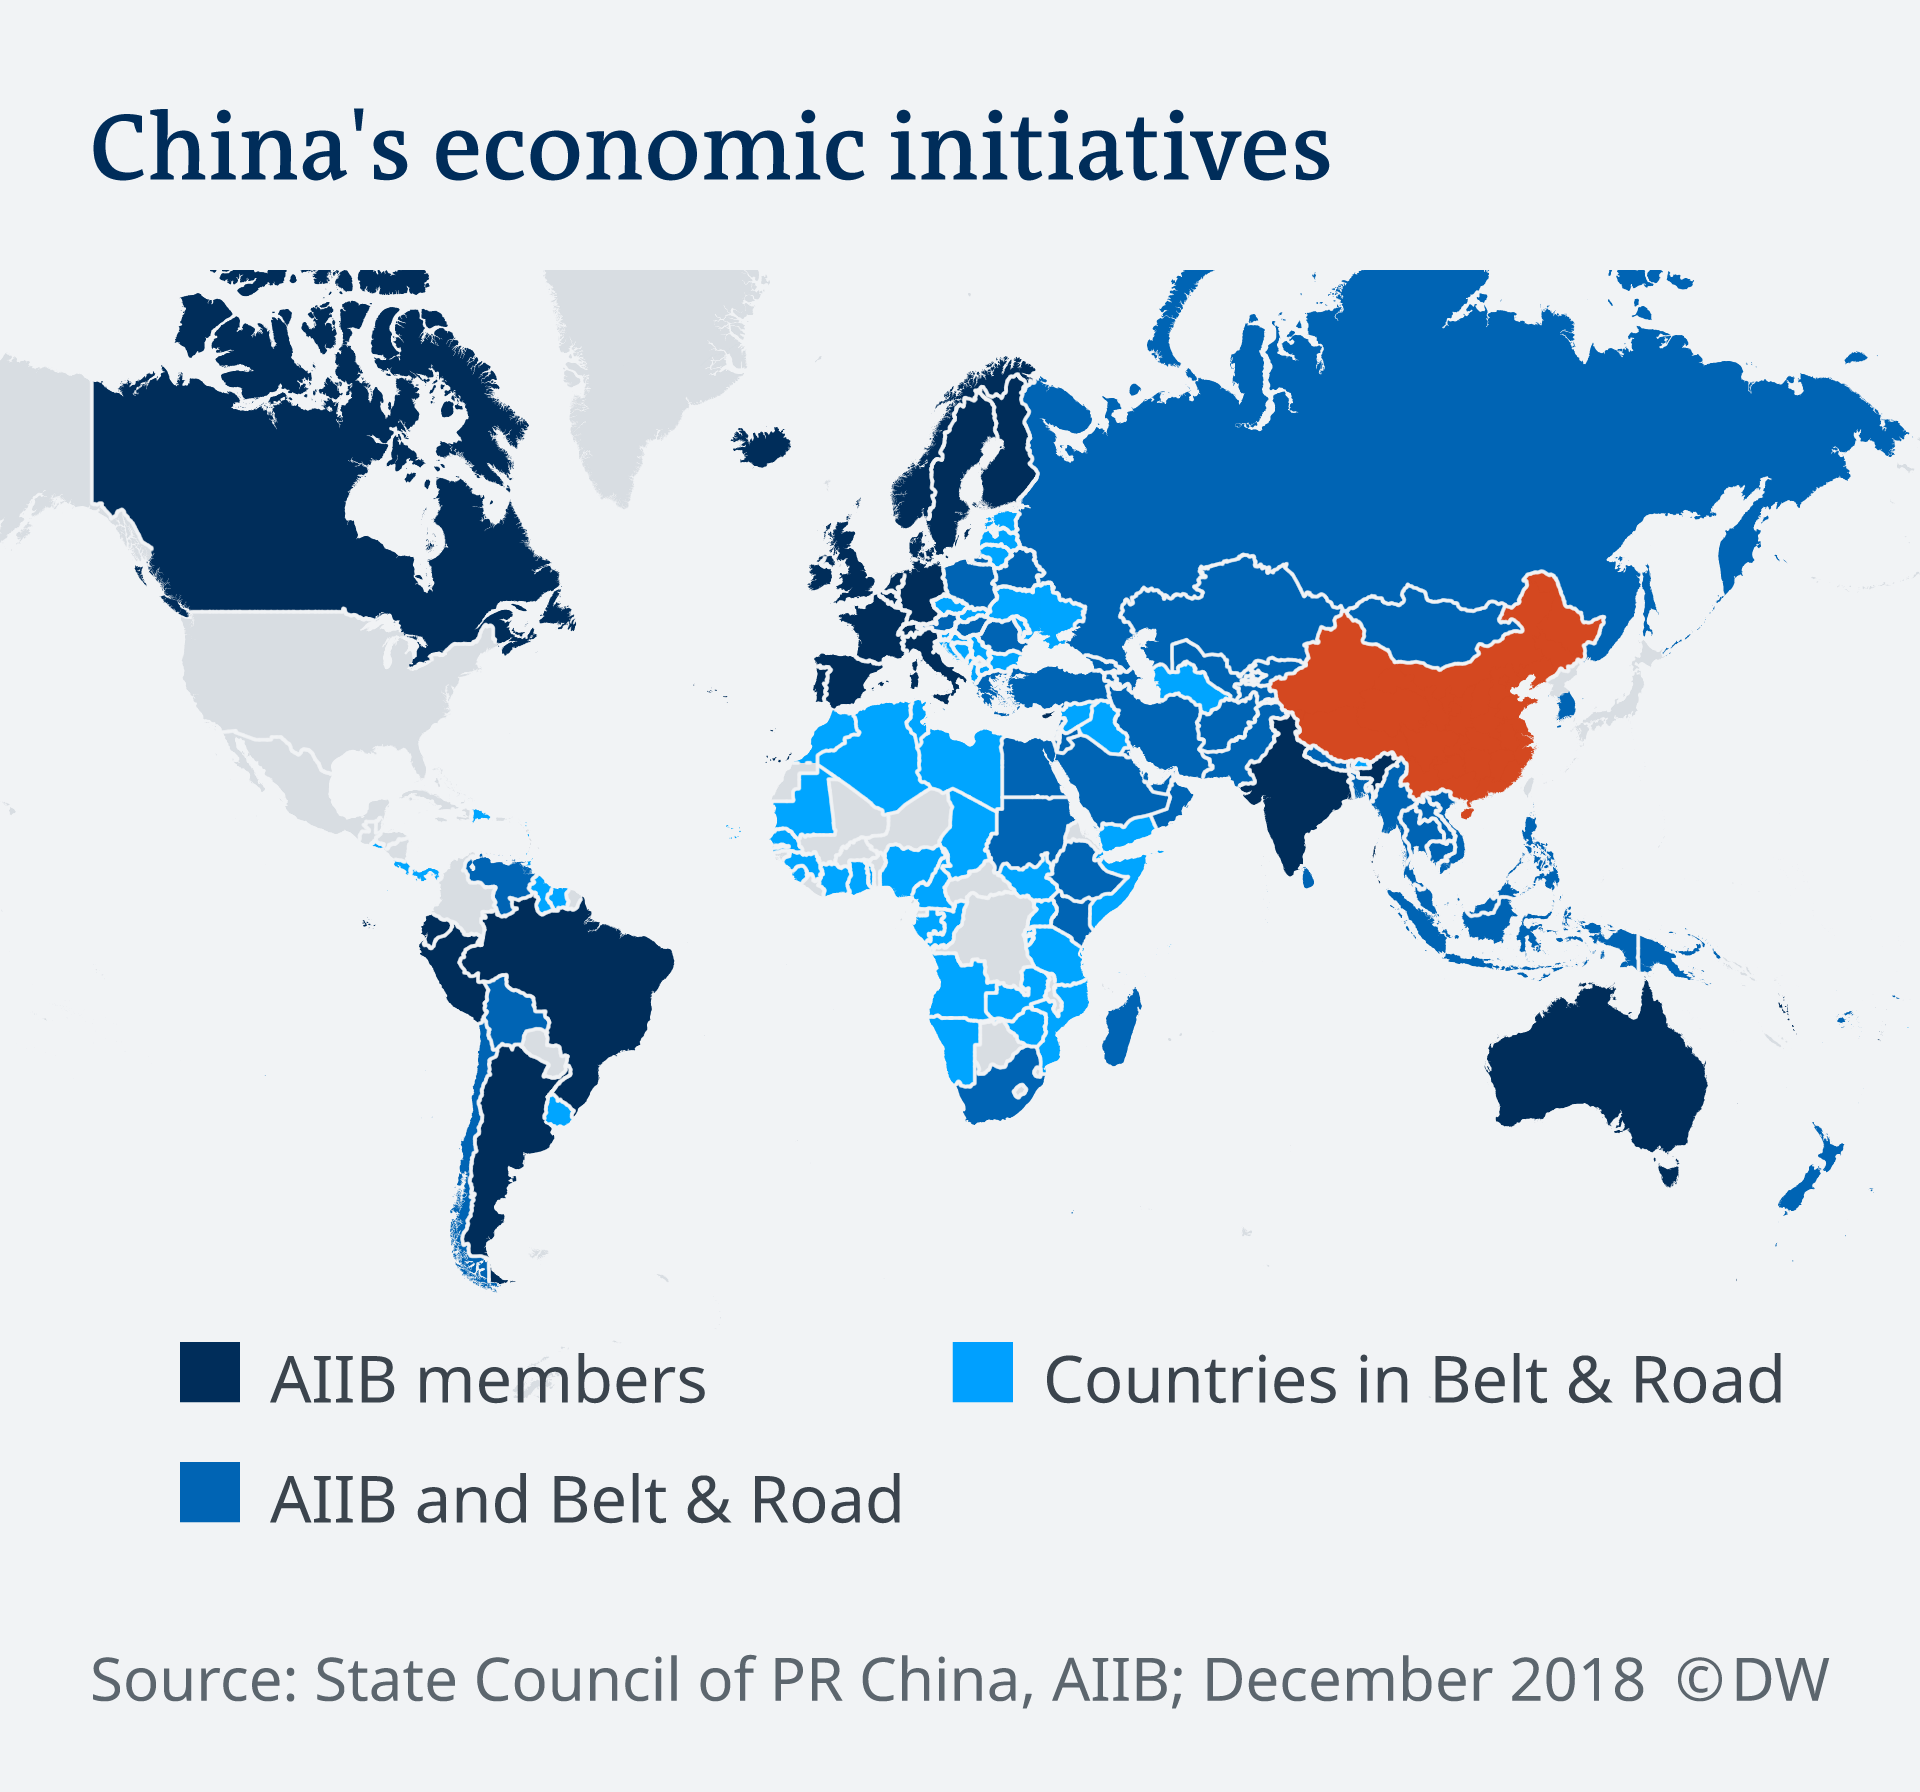 Infographic showing the reach of China's economic initiatives